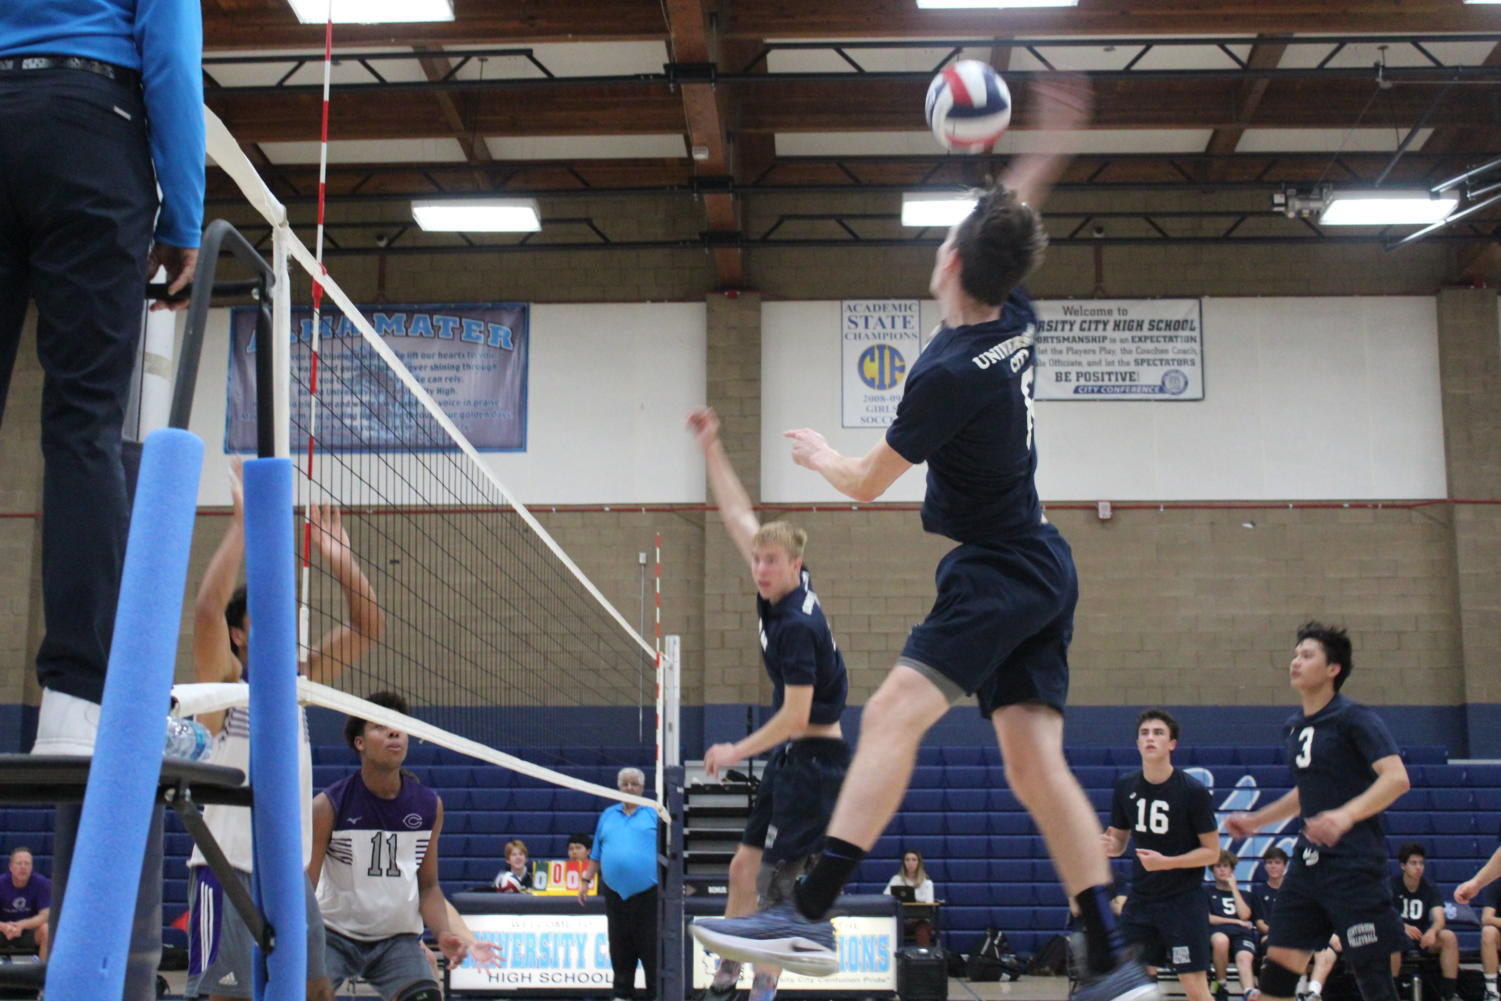 Senior Outside Hitter Connor Martin goes up for a kill on a set from Senior Setter James McMillan in a non-League match versus Carlsbad High.